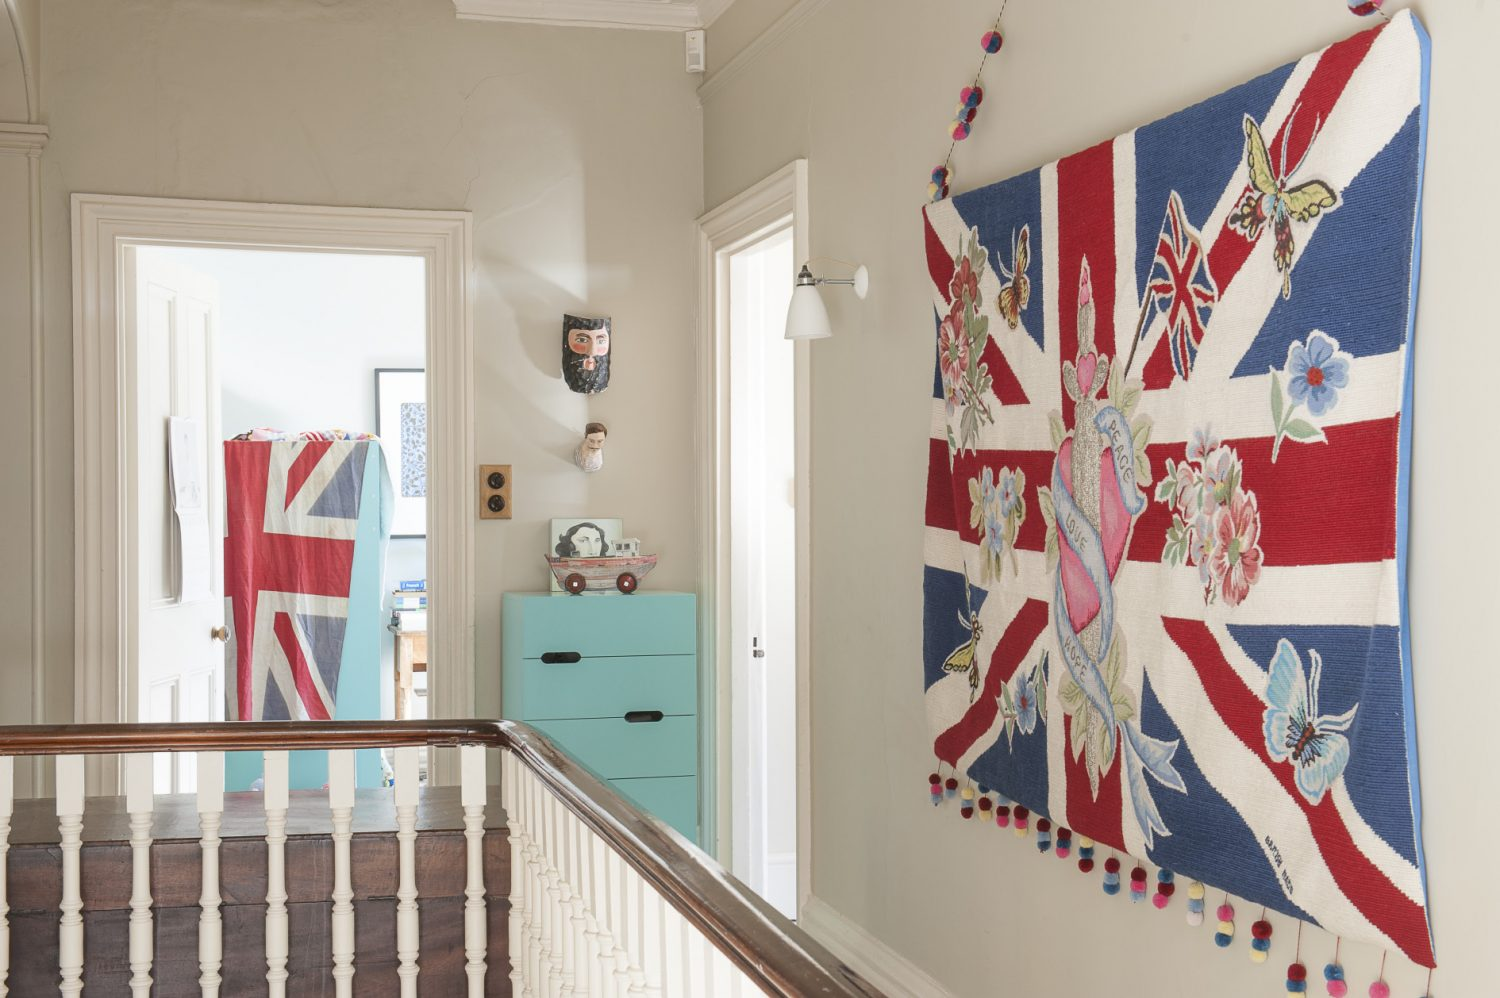 A giant embroidered and beaded Union Jack tapestry hangs boldly on one wall, whilst a comfy armchair is placed next to a set of full-to-bursting bookshelves